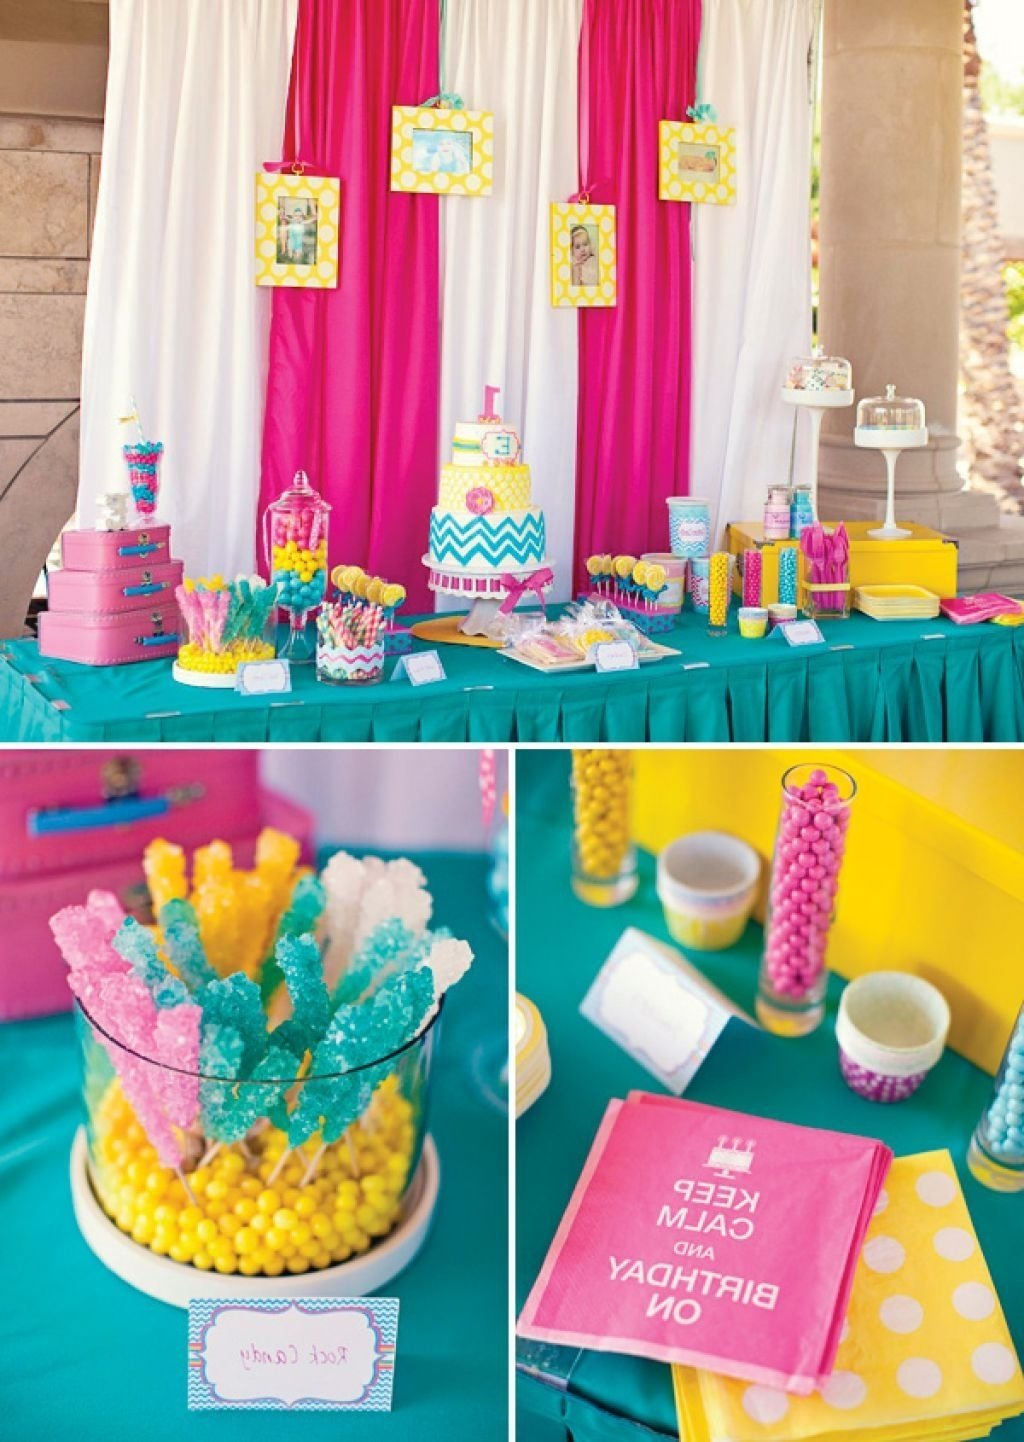 10 Stylish Birthday Party Ideas For 8 Year Old Girls outdoor party decorations google search madeline pinterest 12